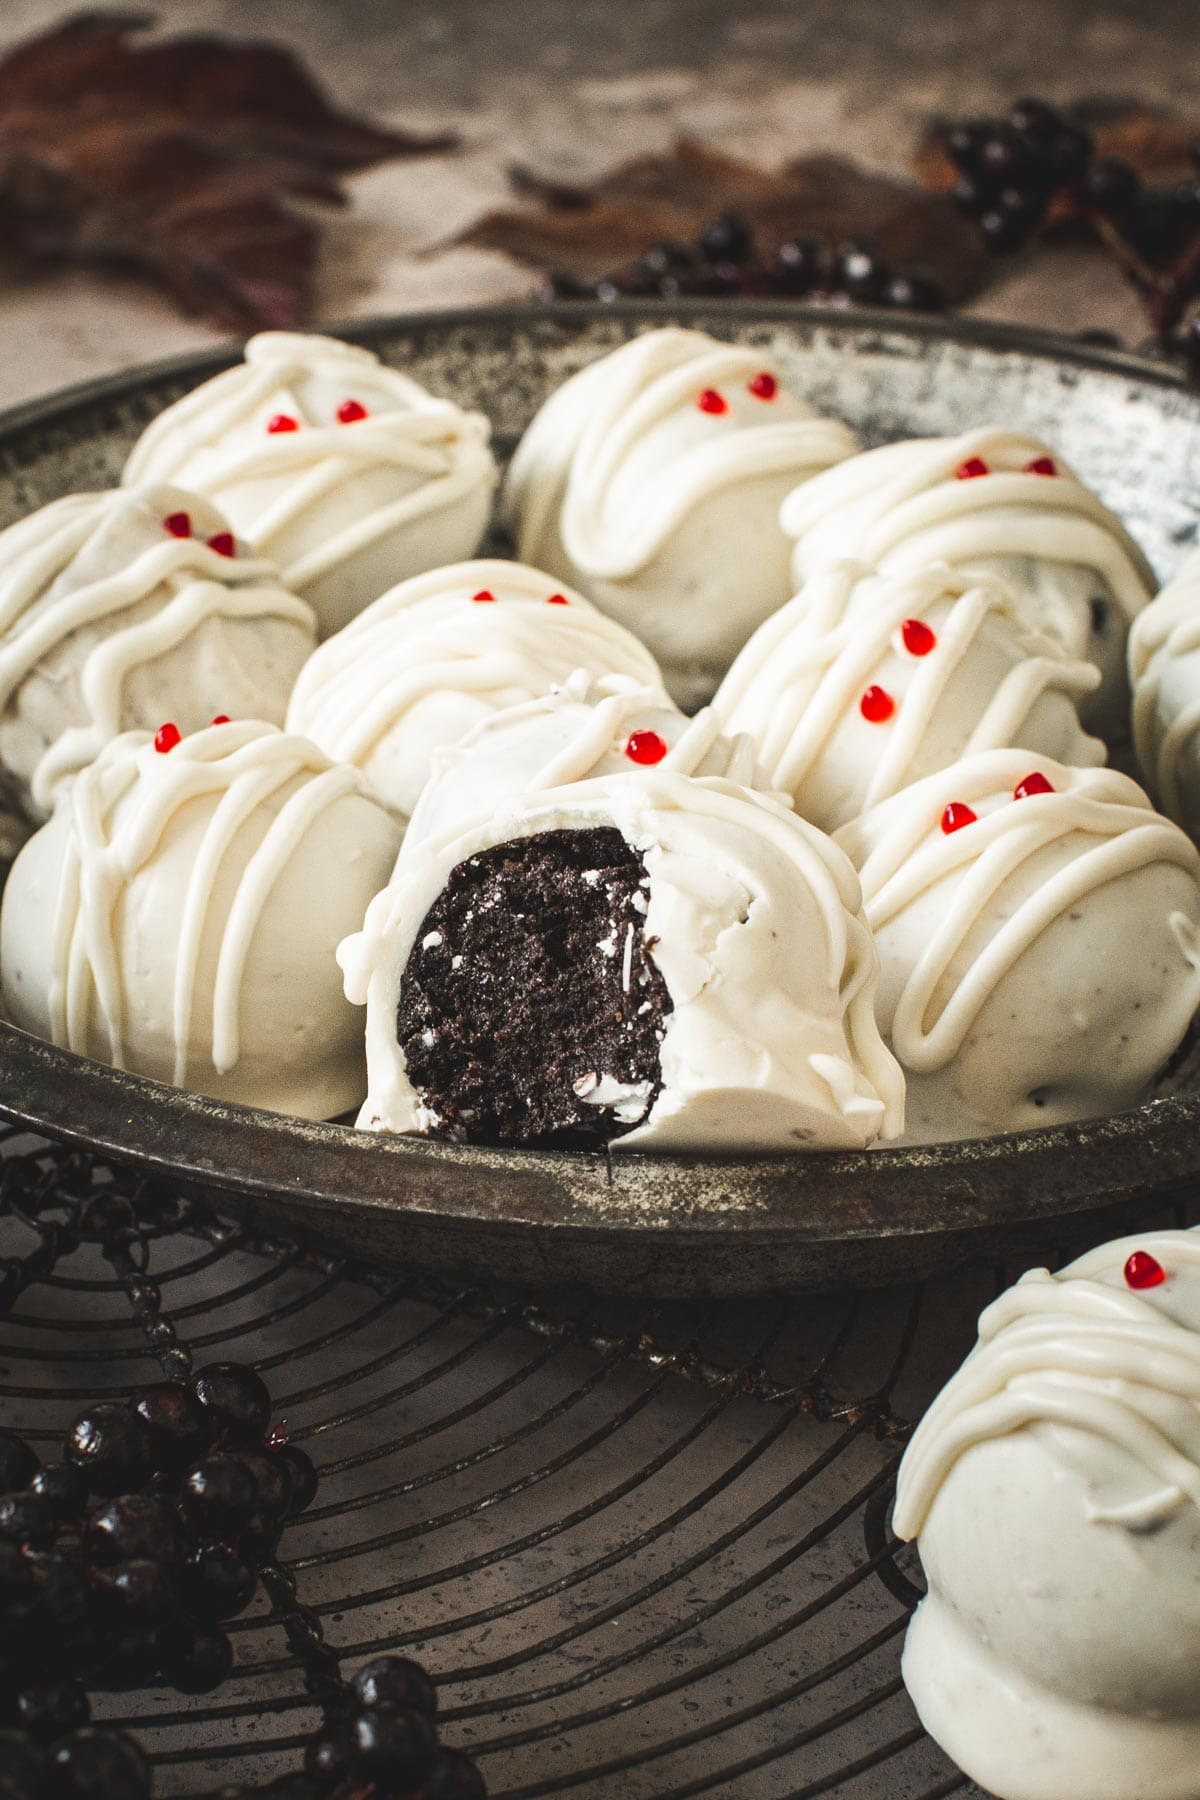 Oreo cookie ball with a bite taken out of it sitting on top of other balls.